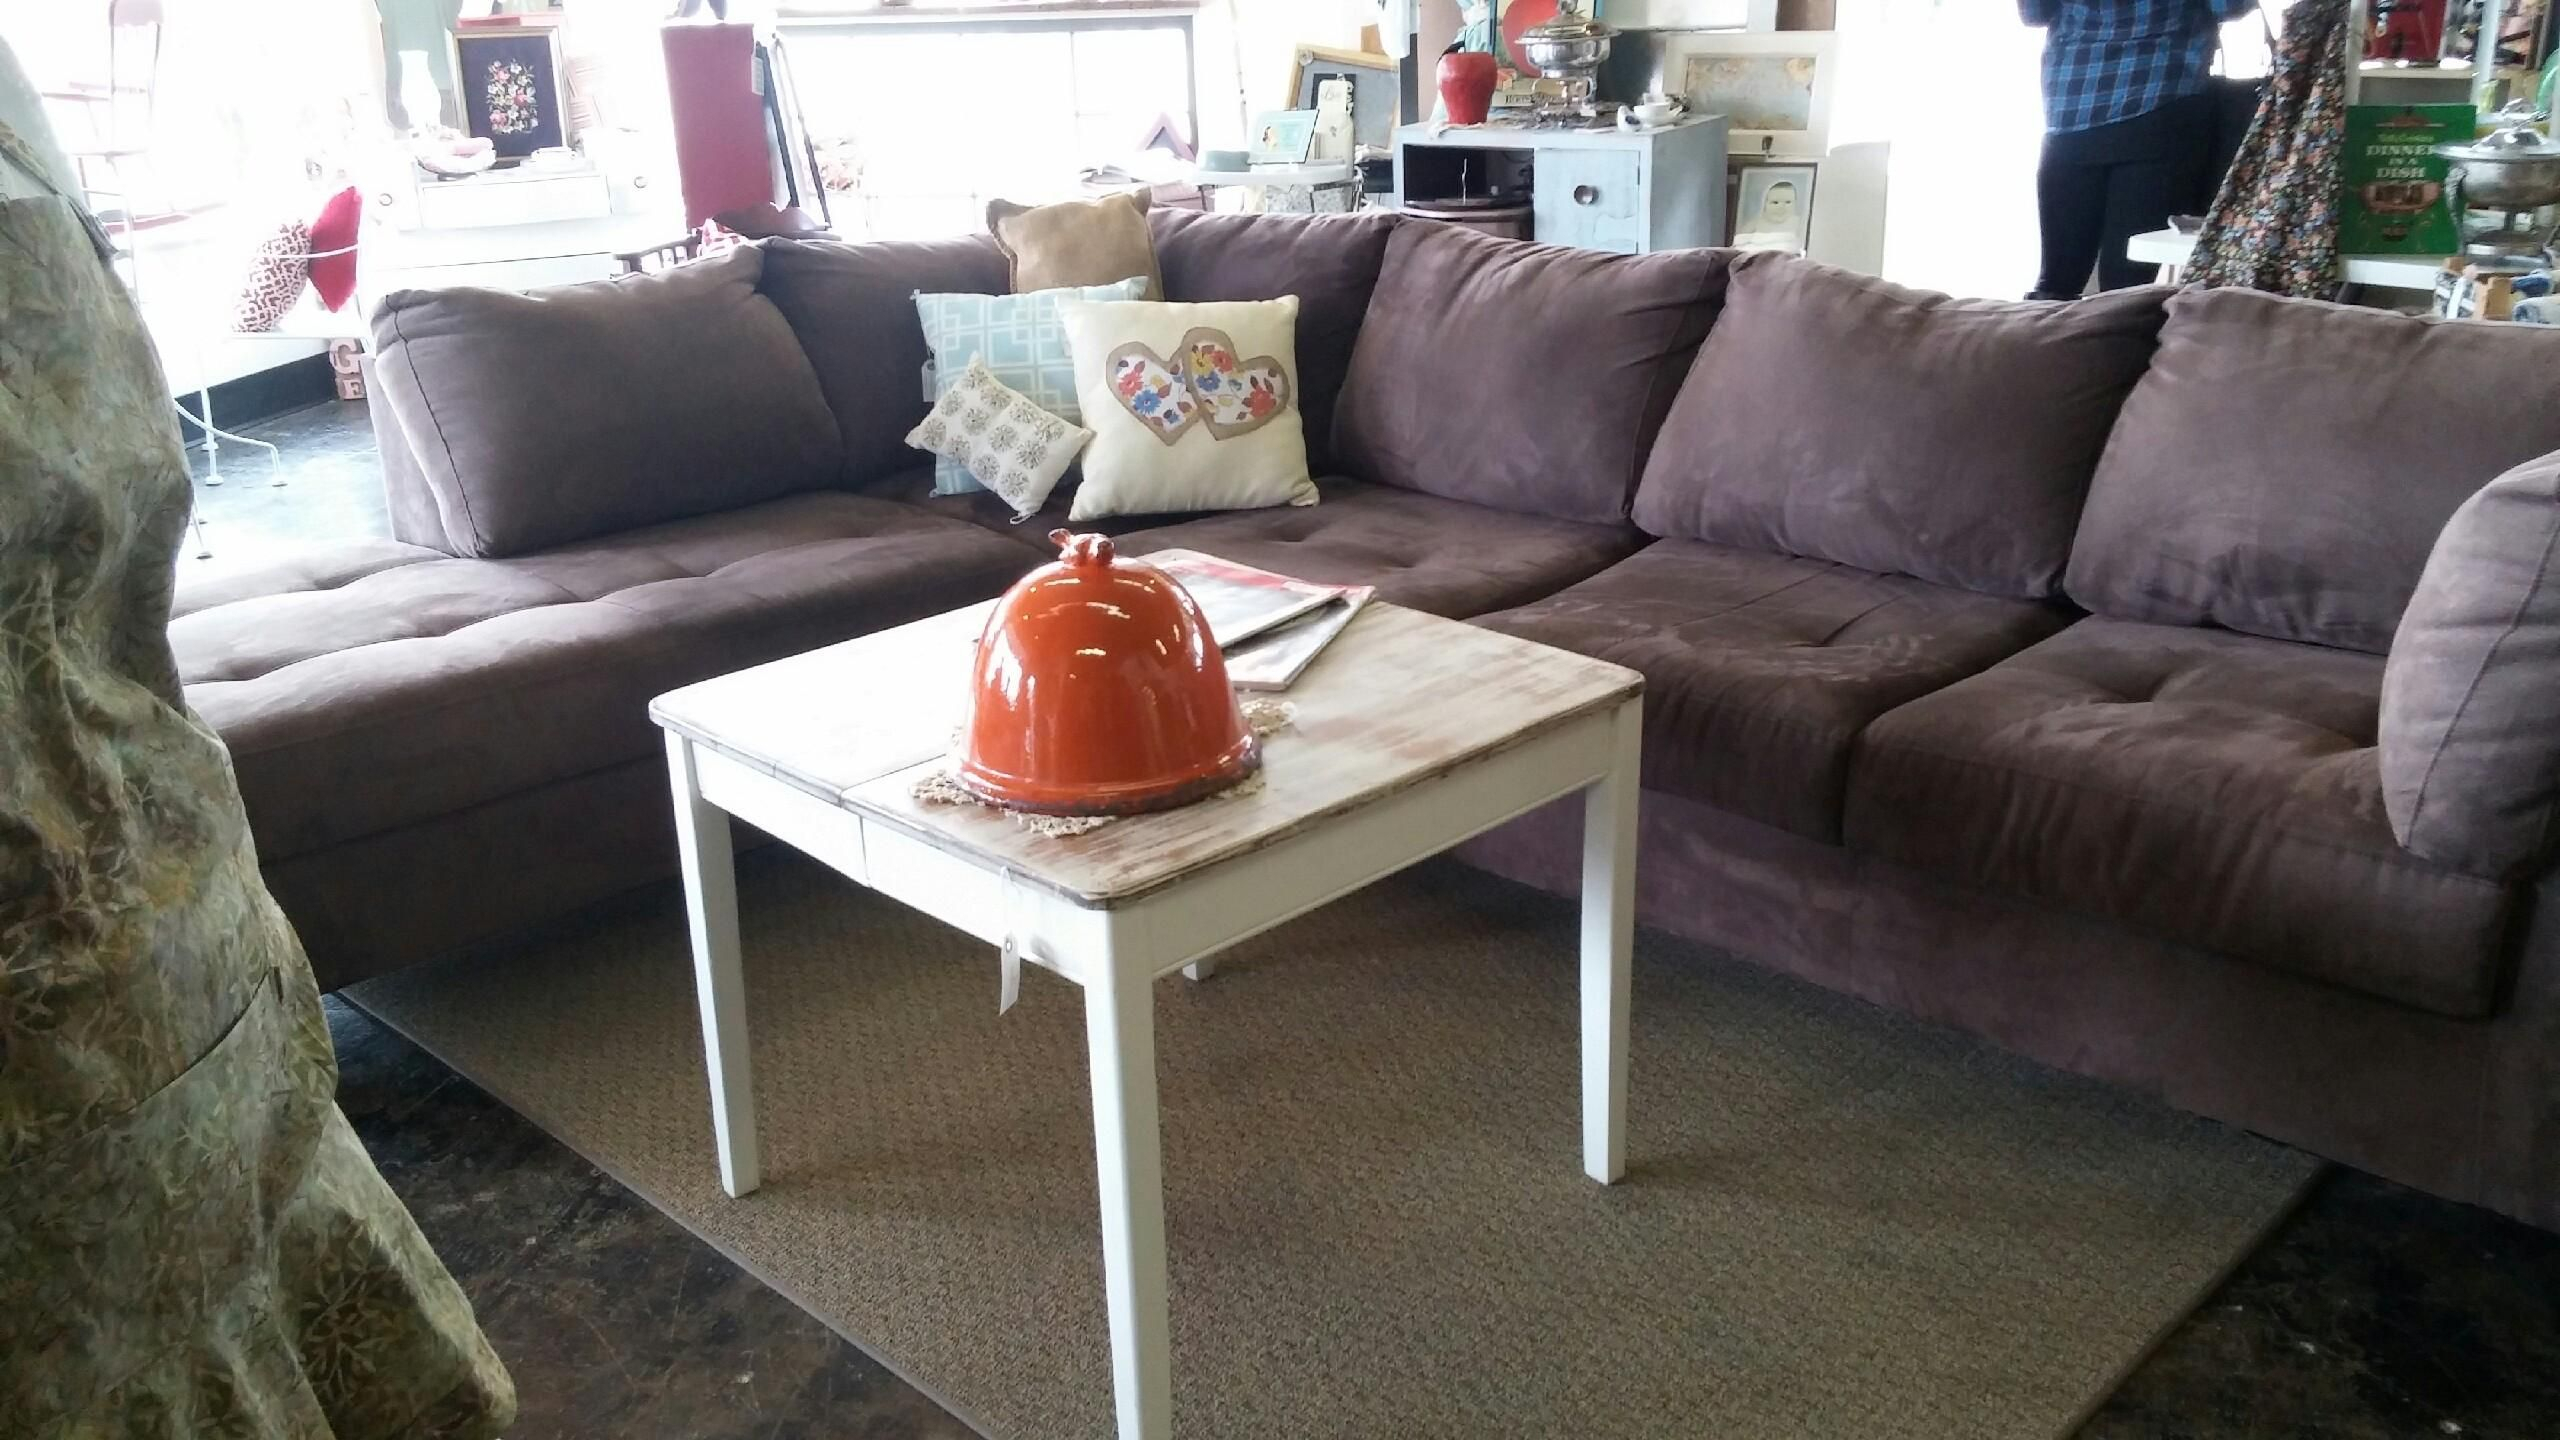 Pinmustard Seed Home Decor & More On Furniture With Regard To French Seamed Sectional Sofas Oblong Mustard (View 7 of 15)